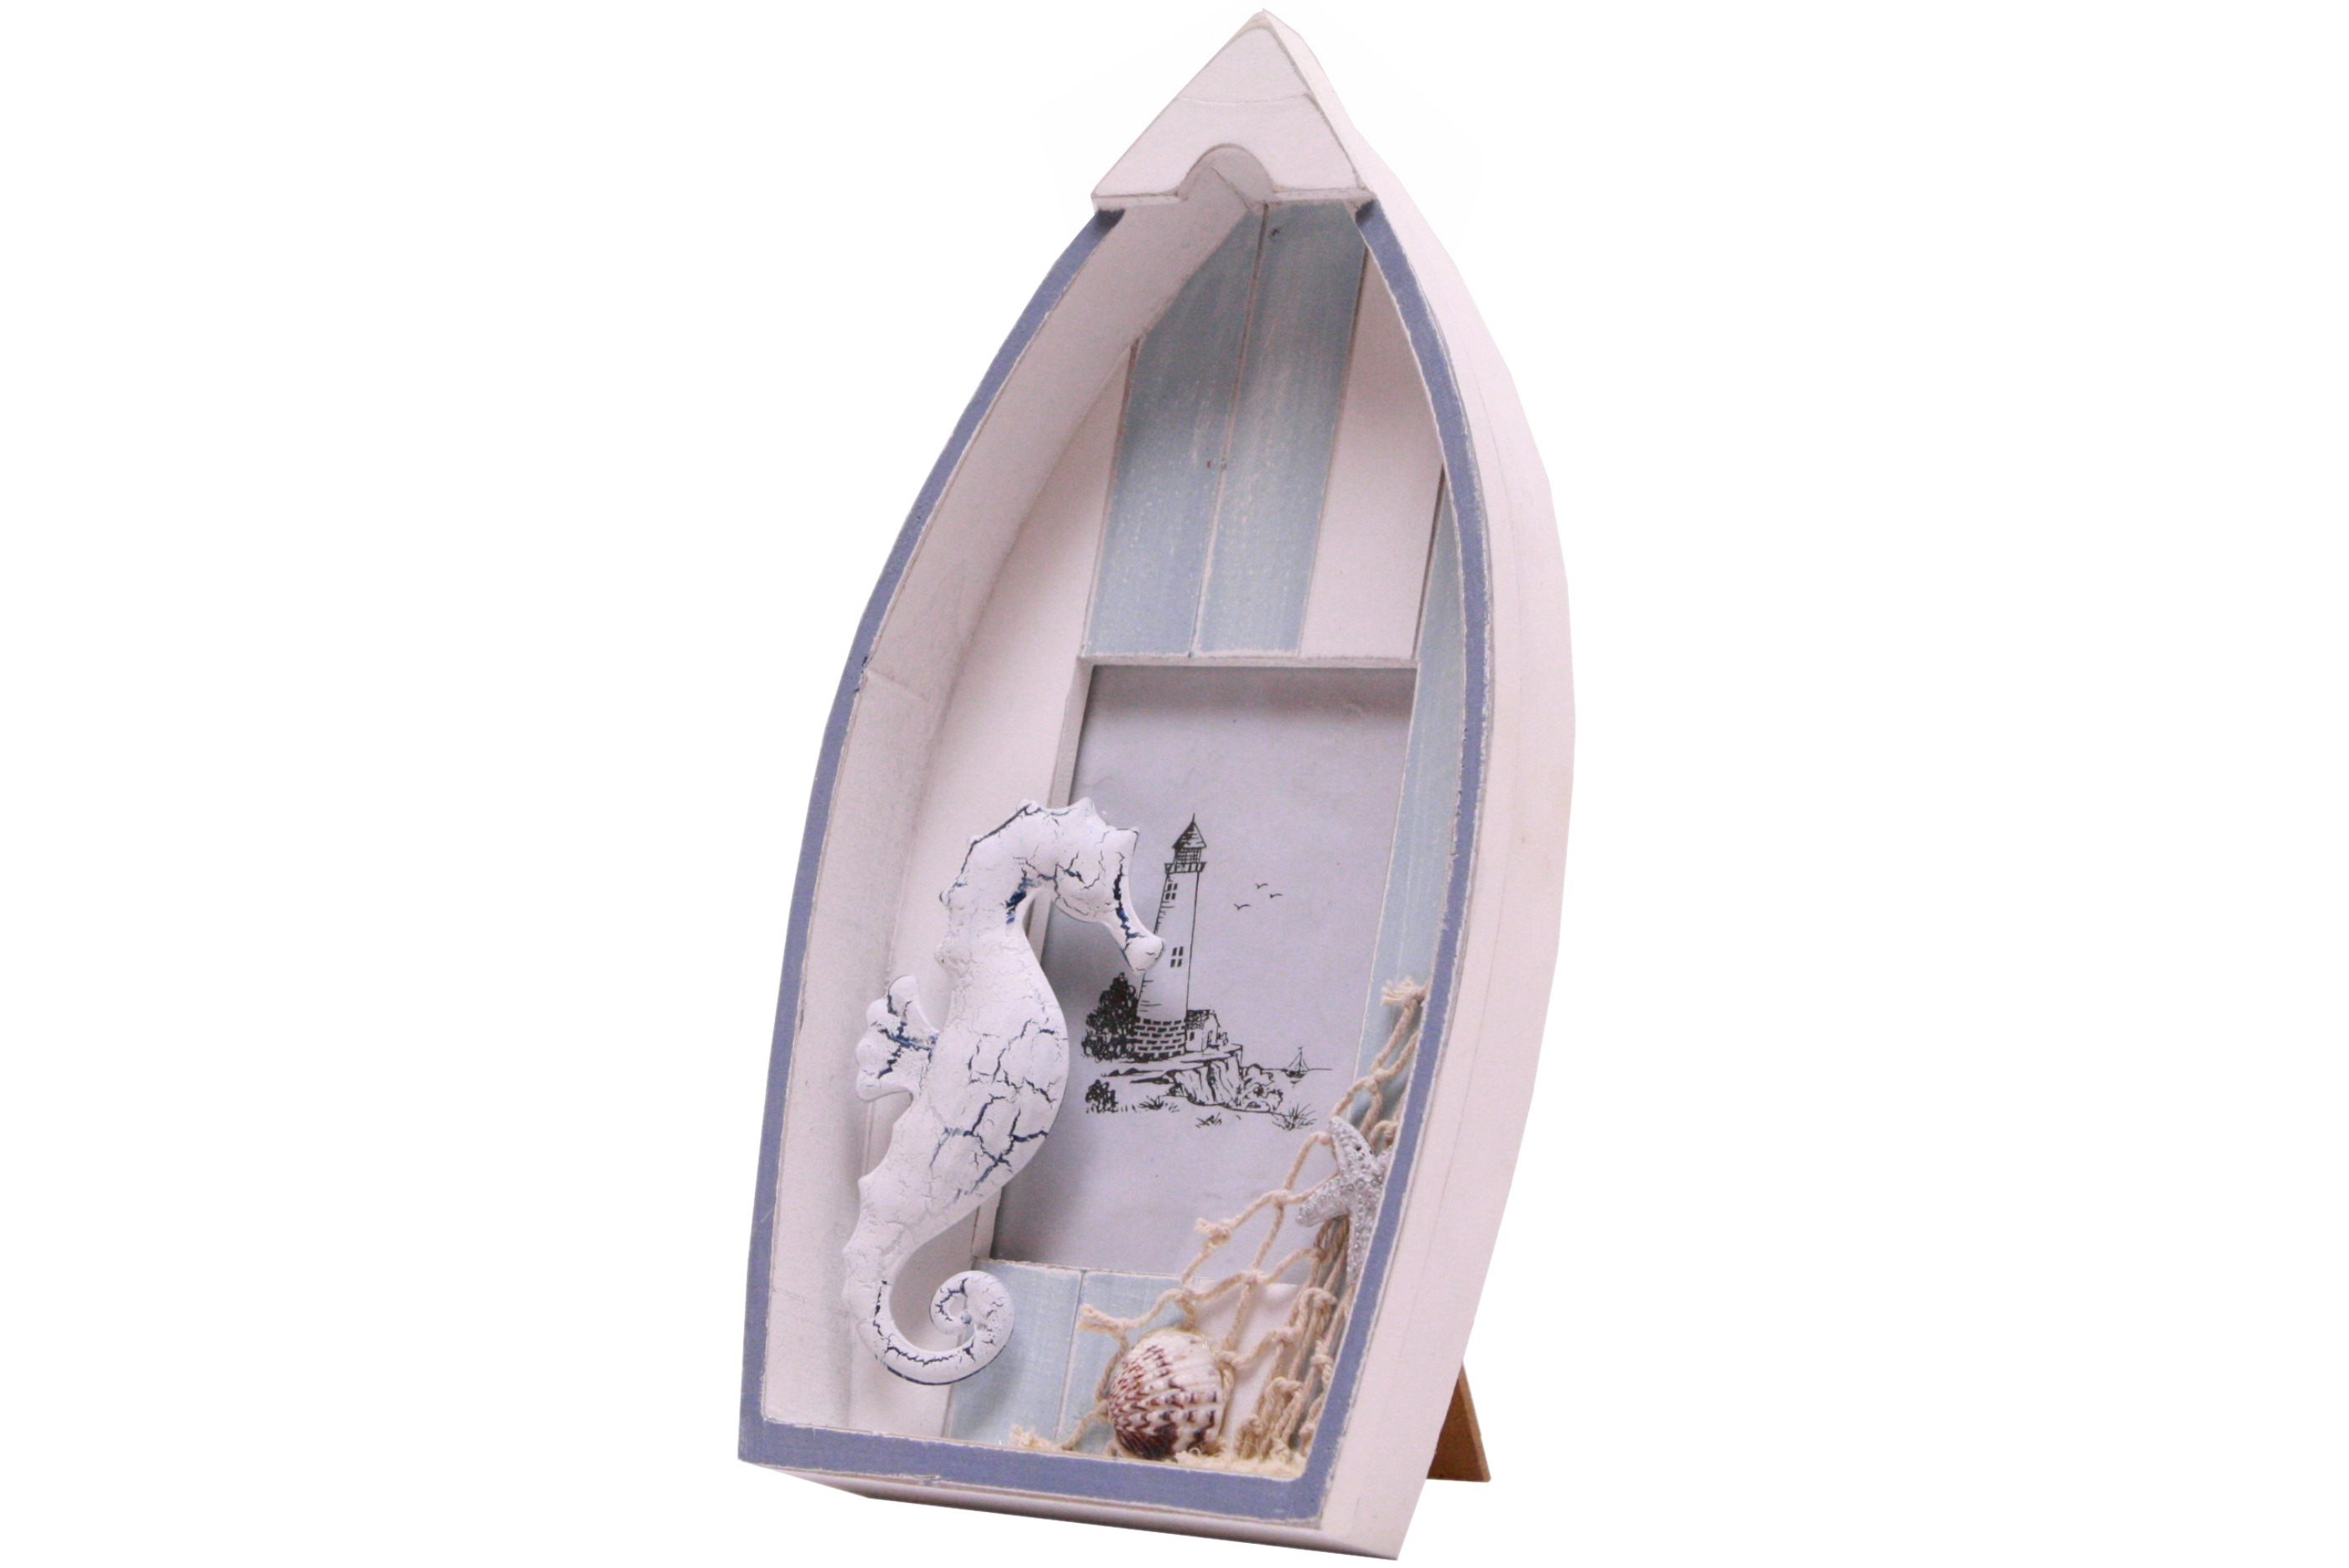 28cm Wooden Boat Picture Frame